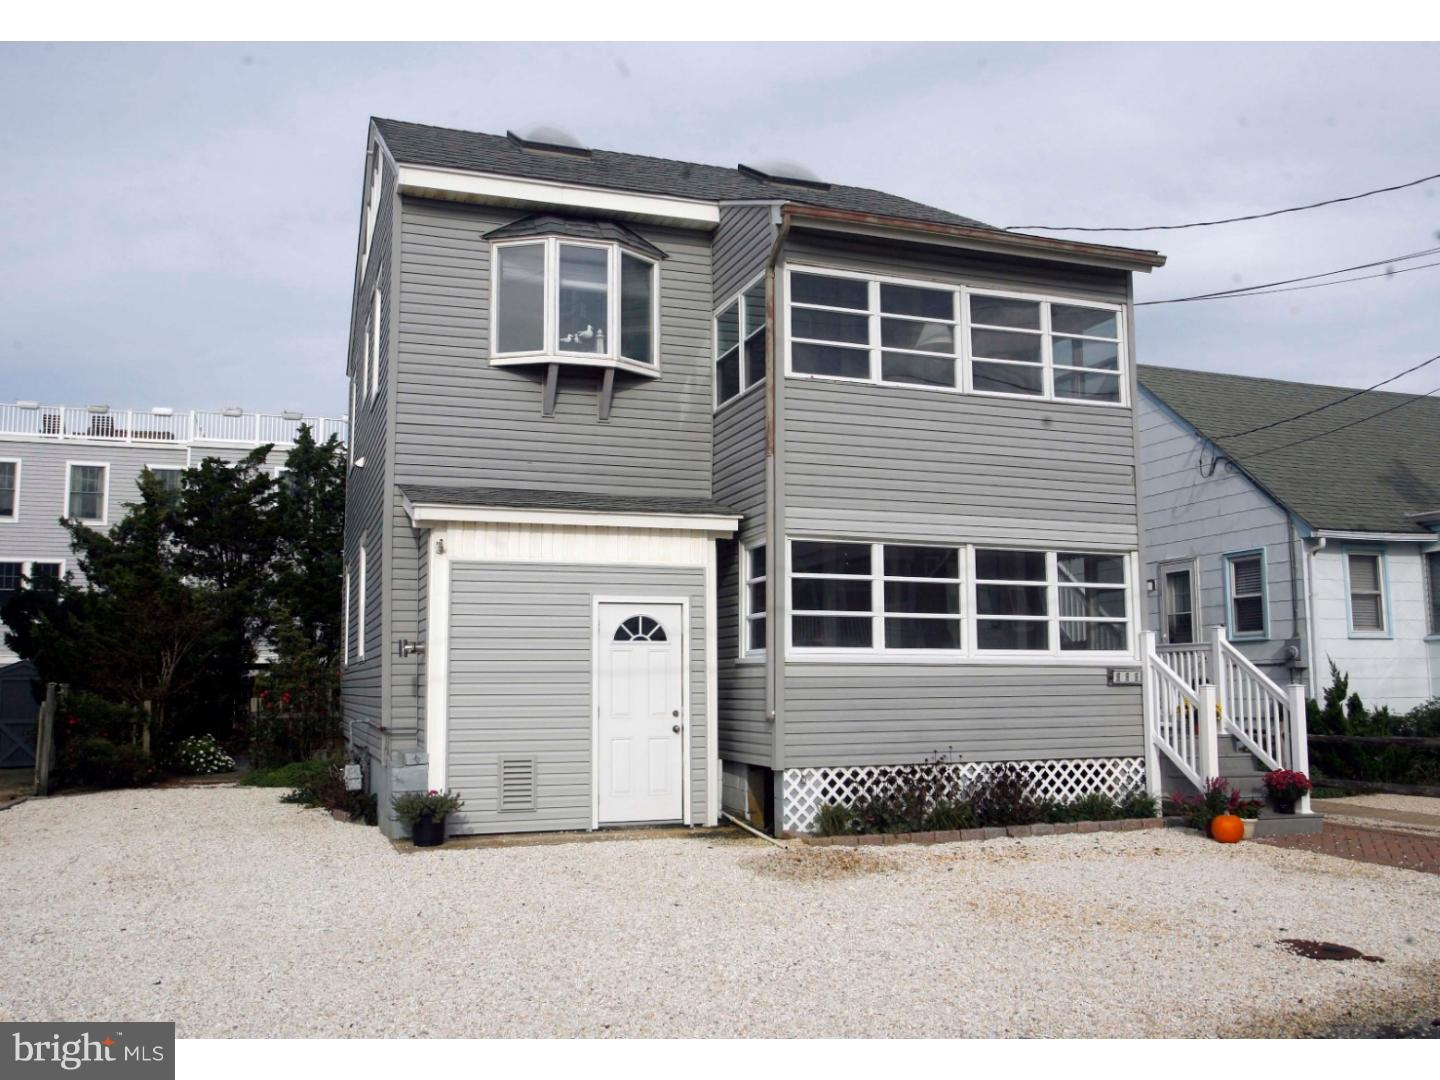 109 E 30TH STREET, SHIP BOTTOM, NJ 08008